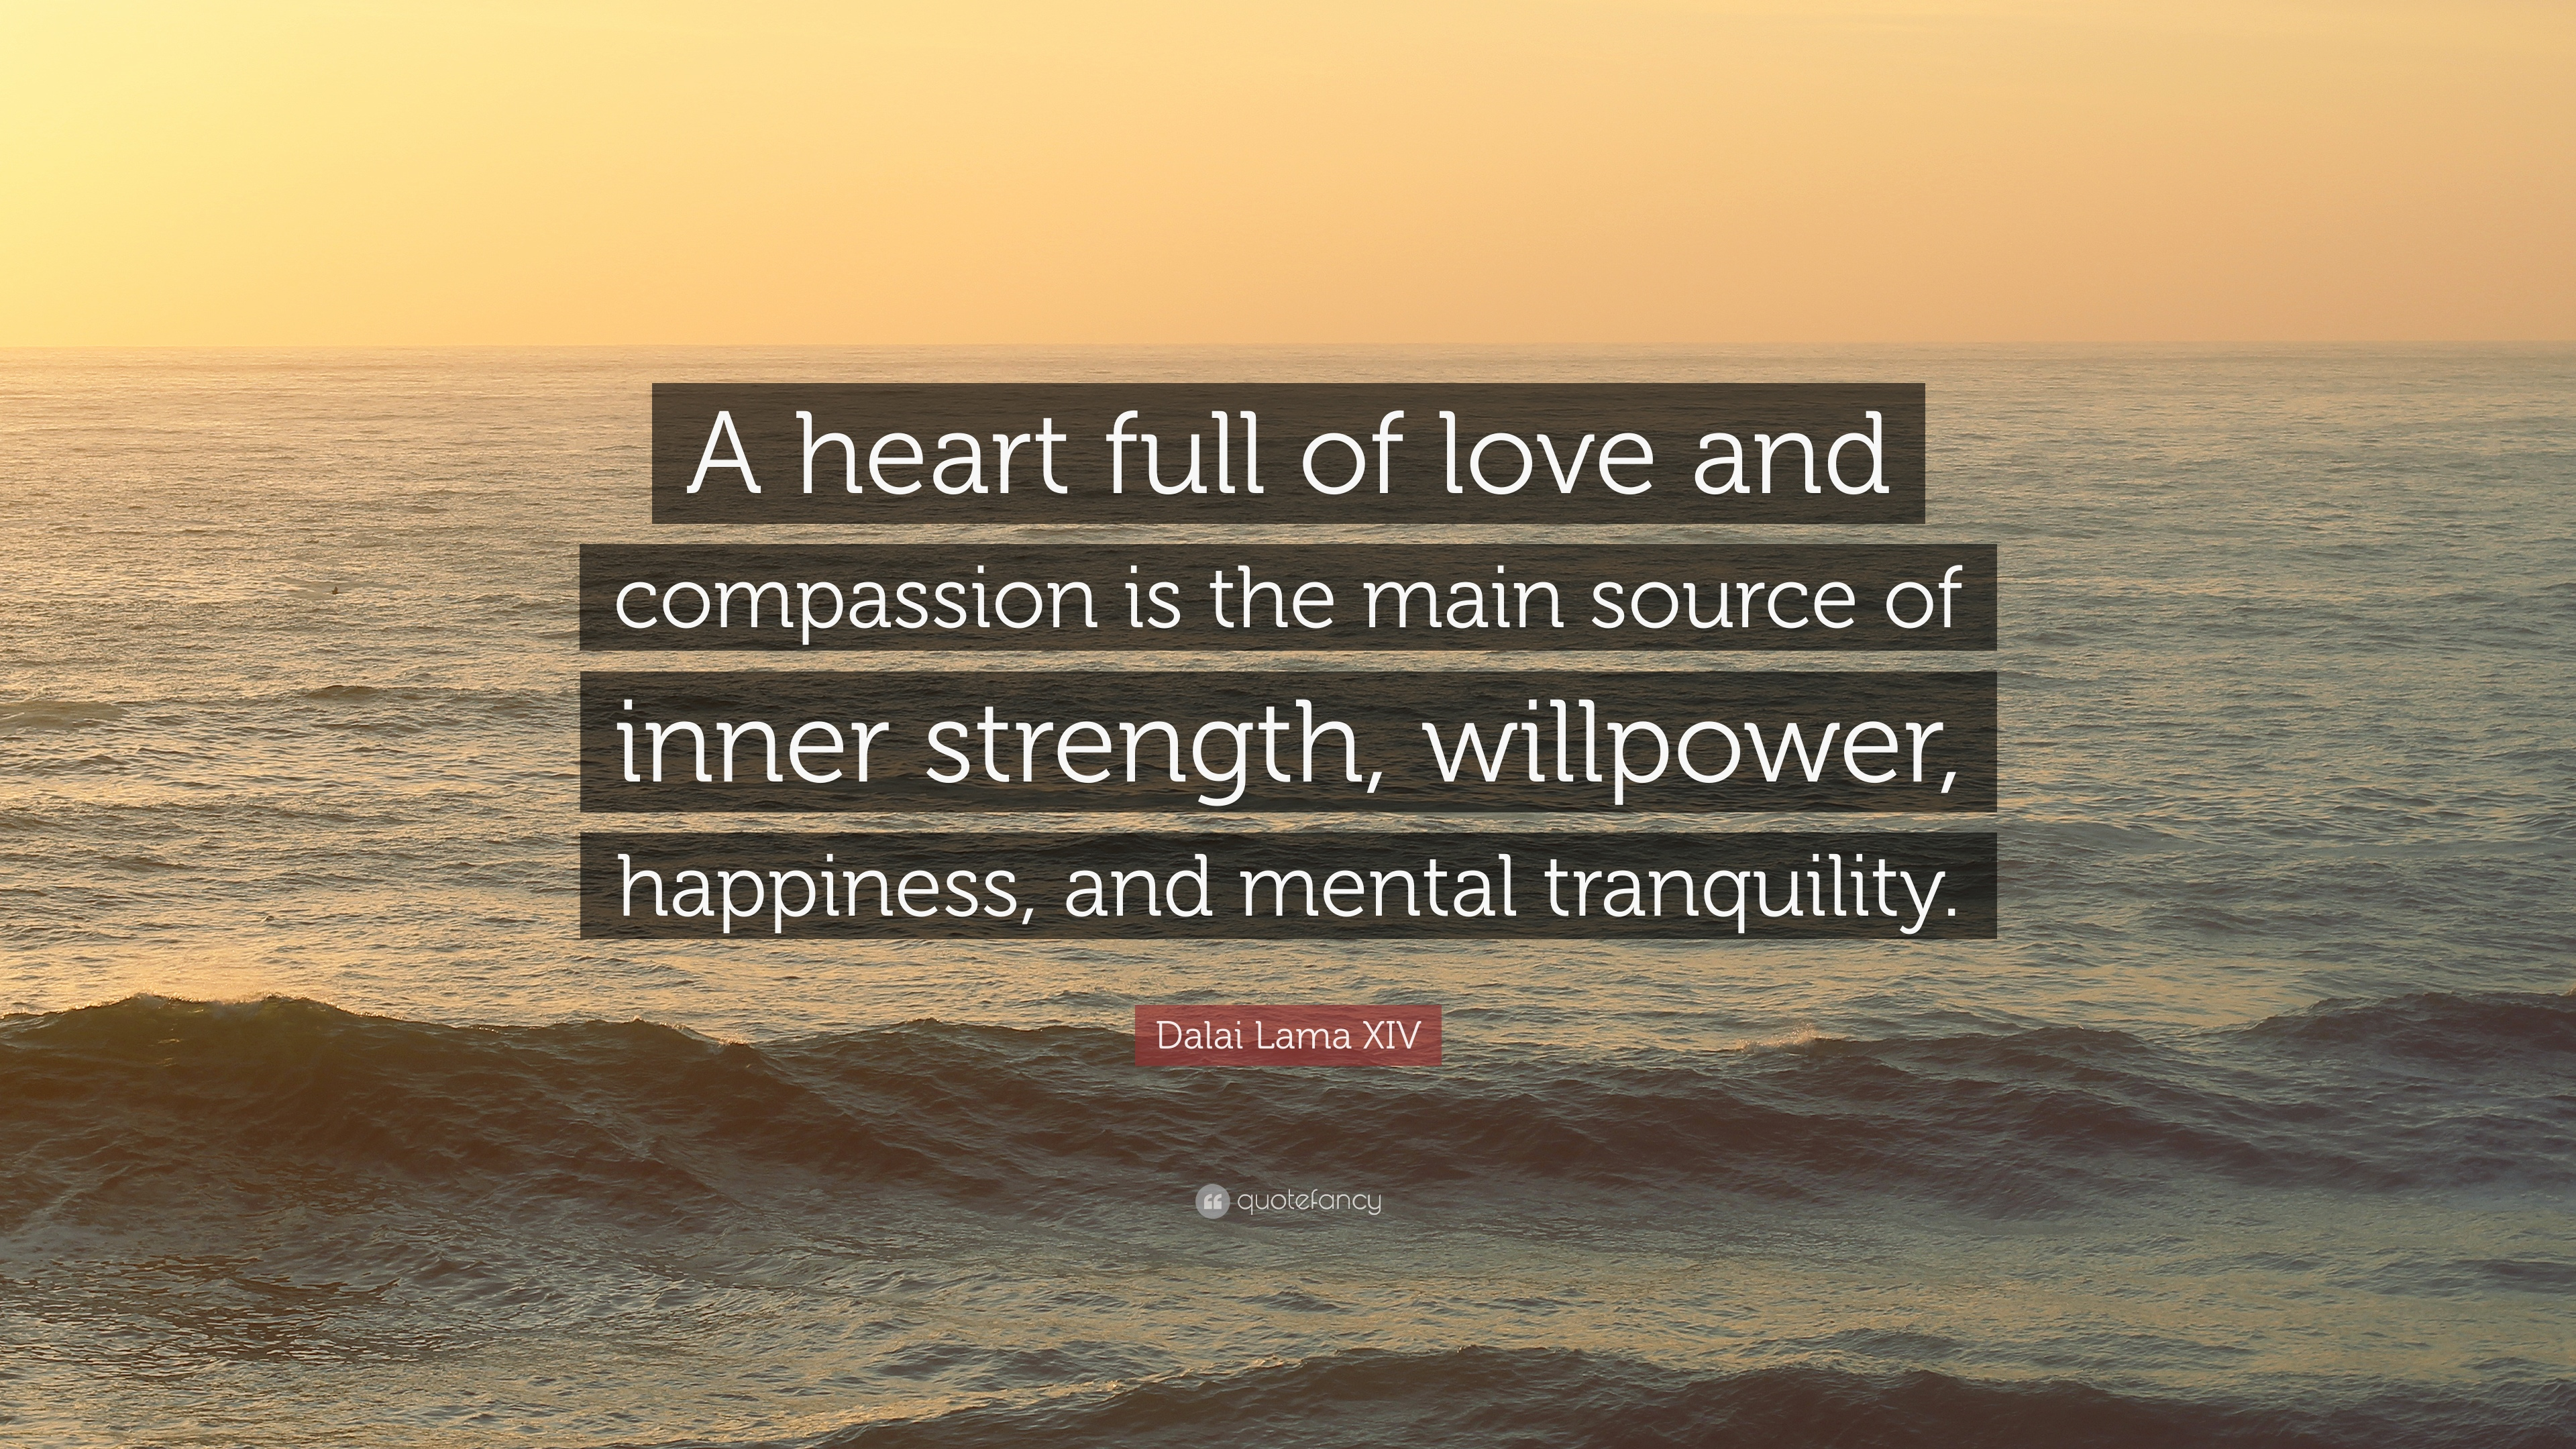 dalai lama xiv quote a heart full of love and compassion is the main